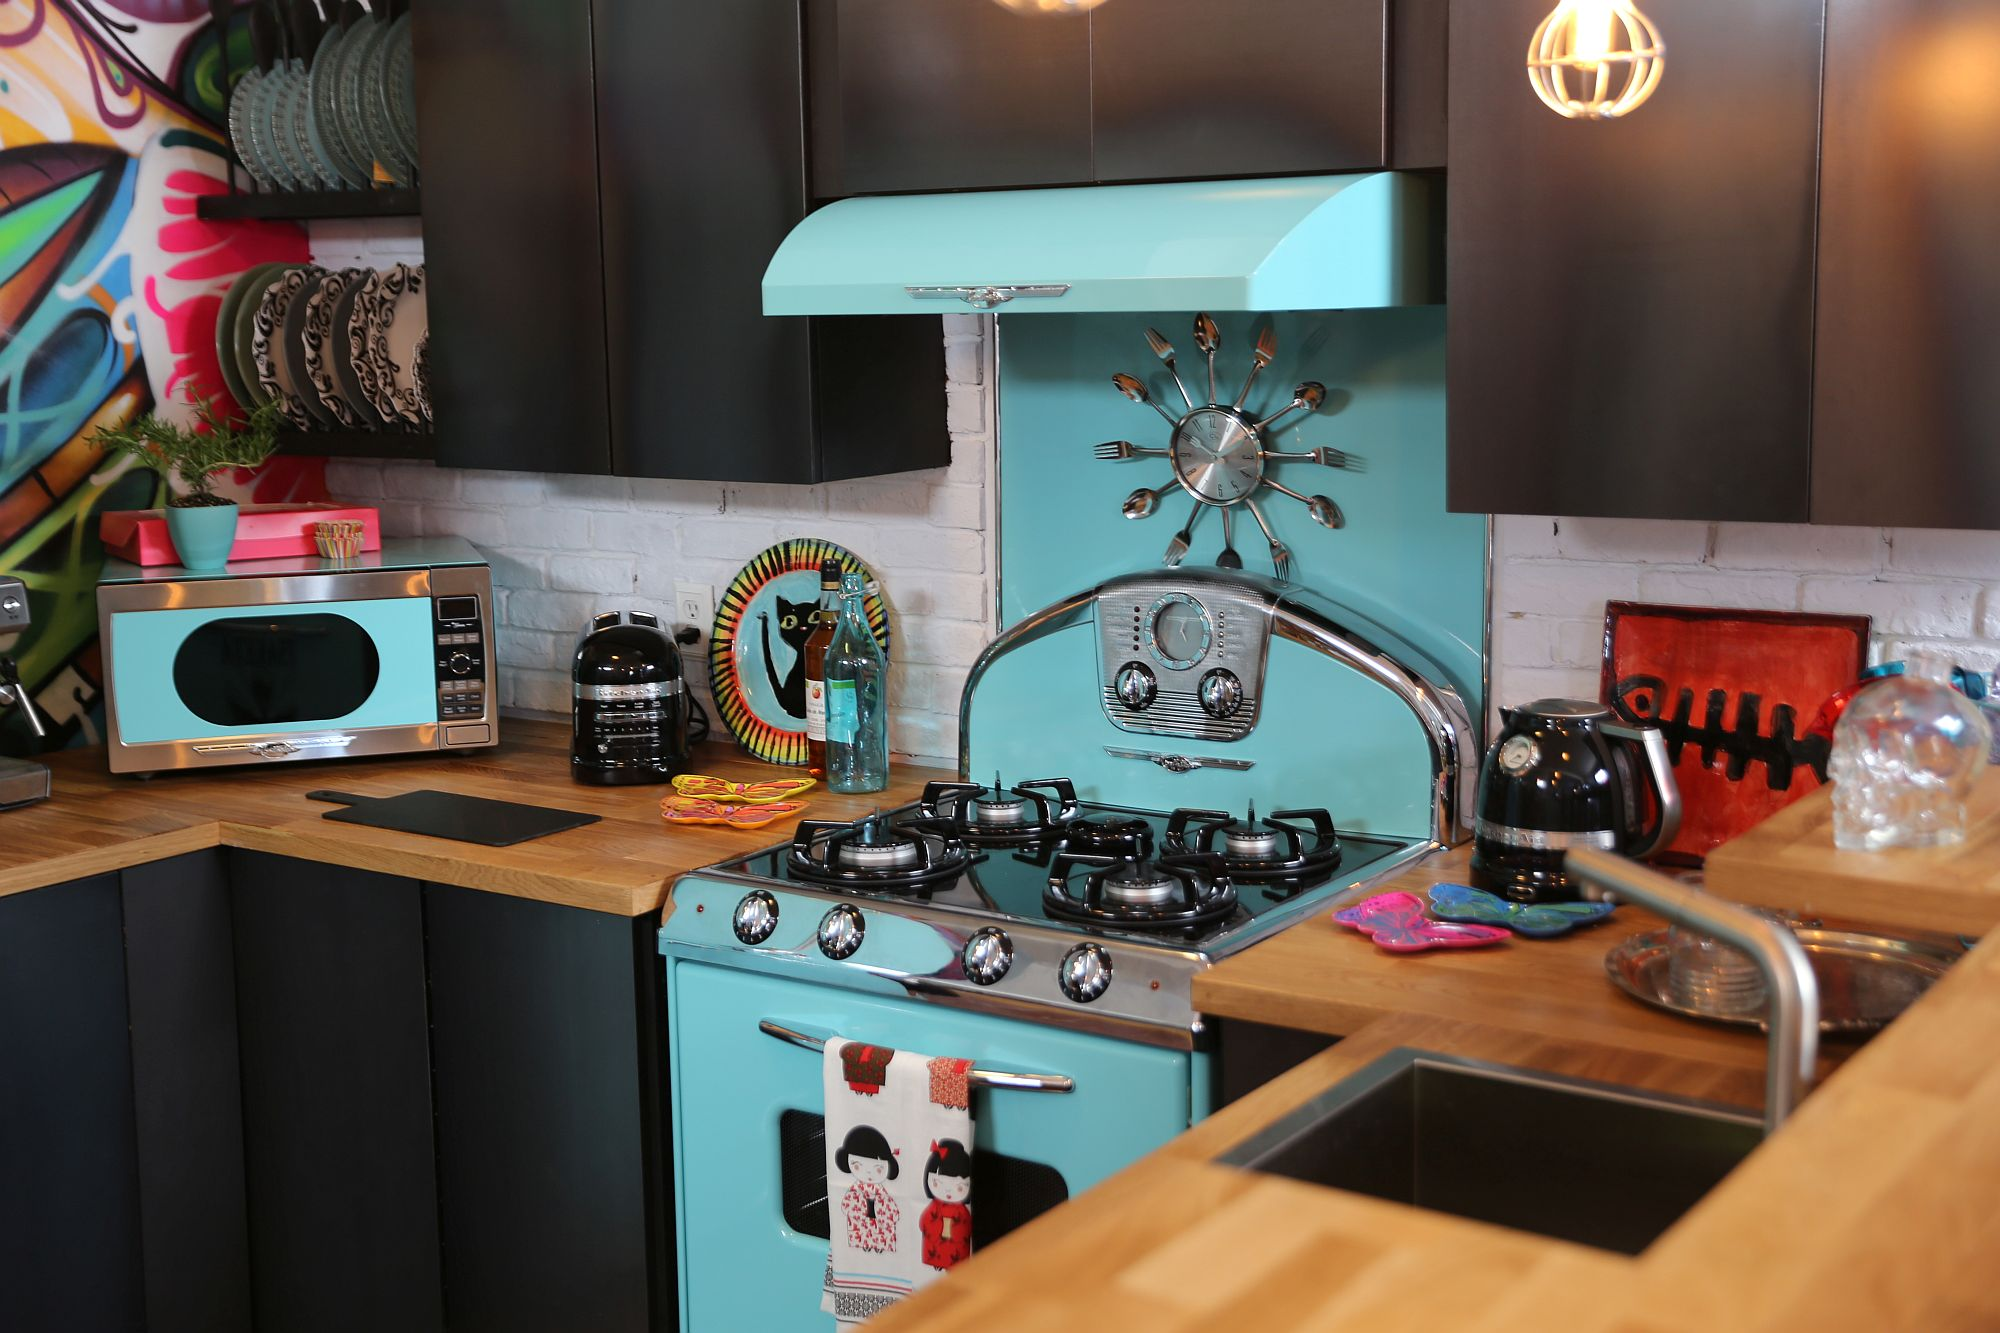 Give retro touches to modern kitchen with the Northstar series